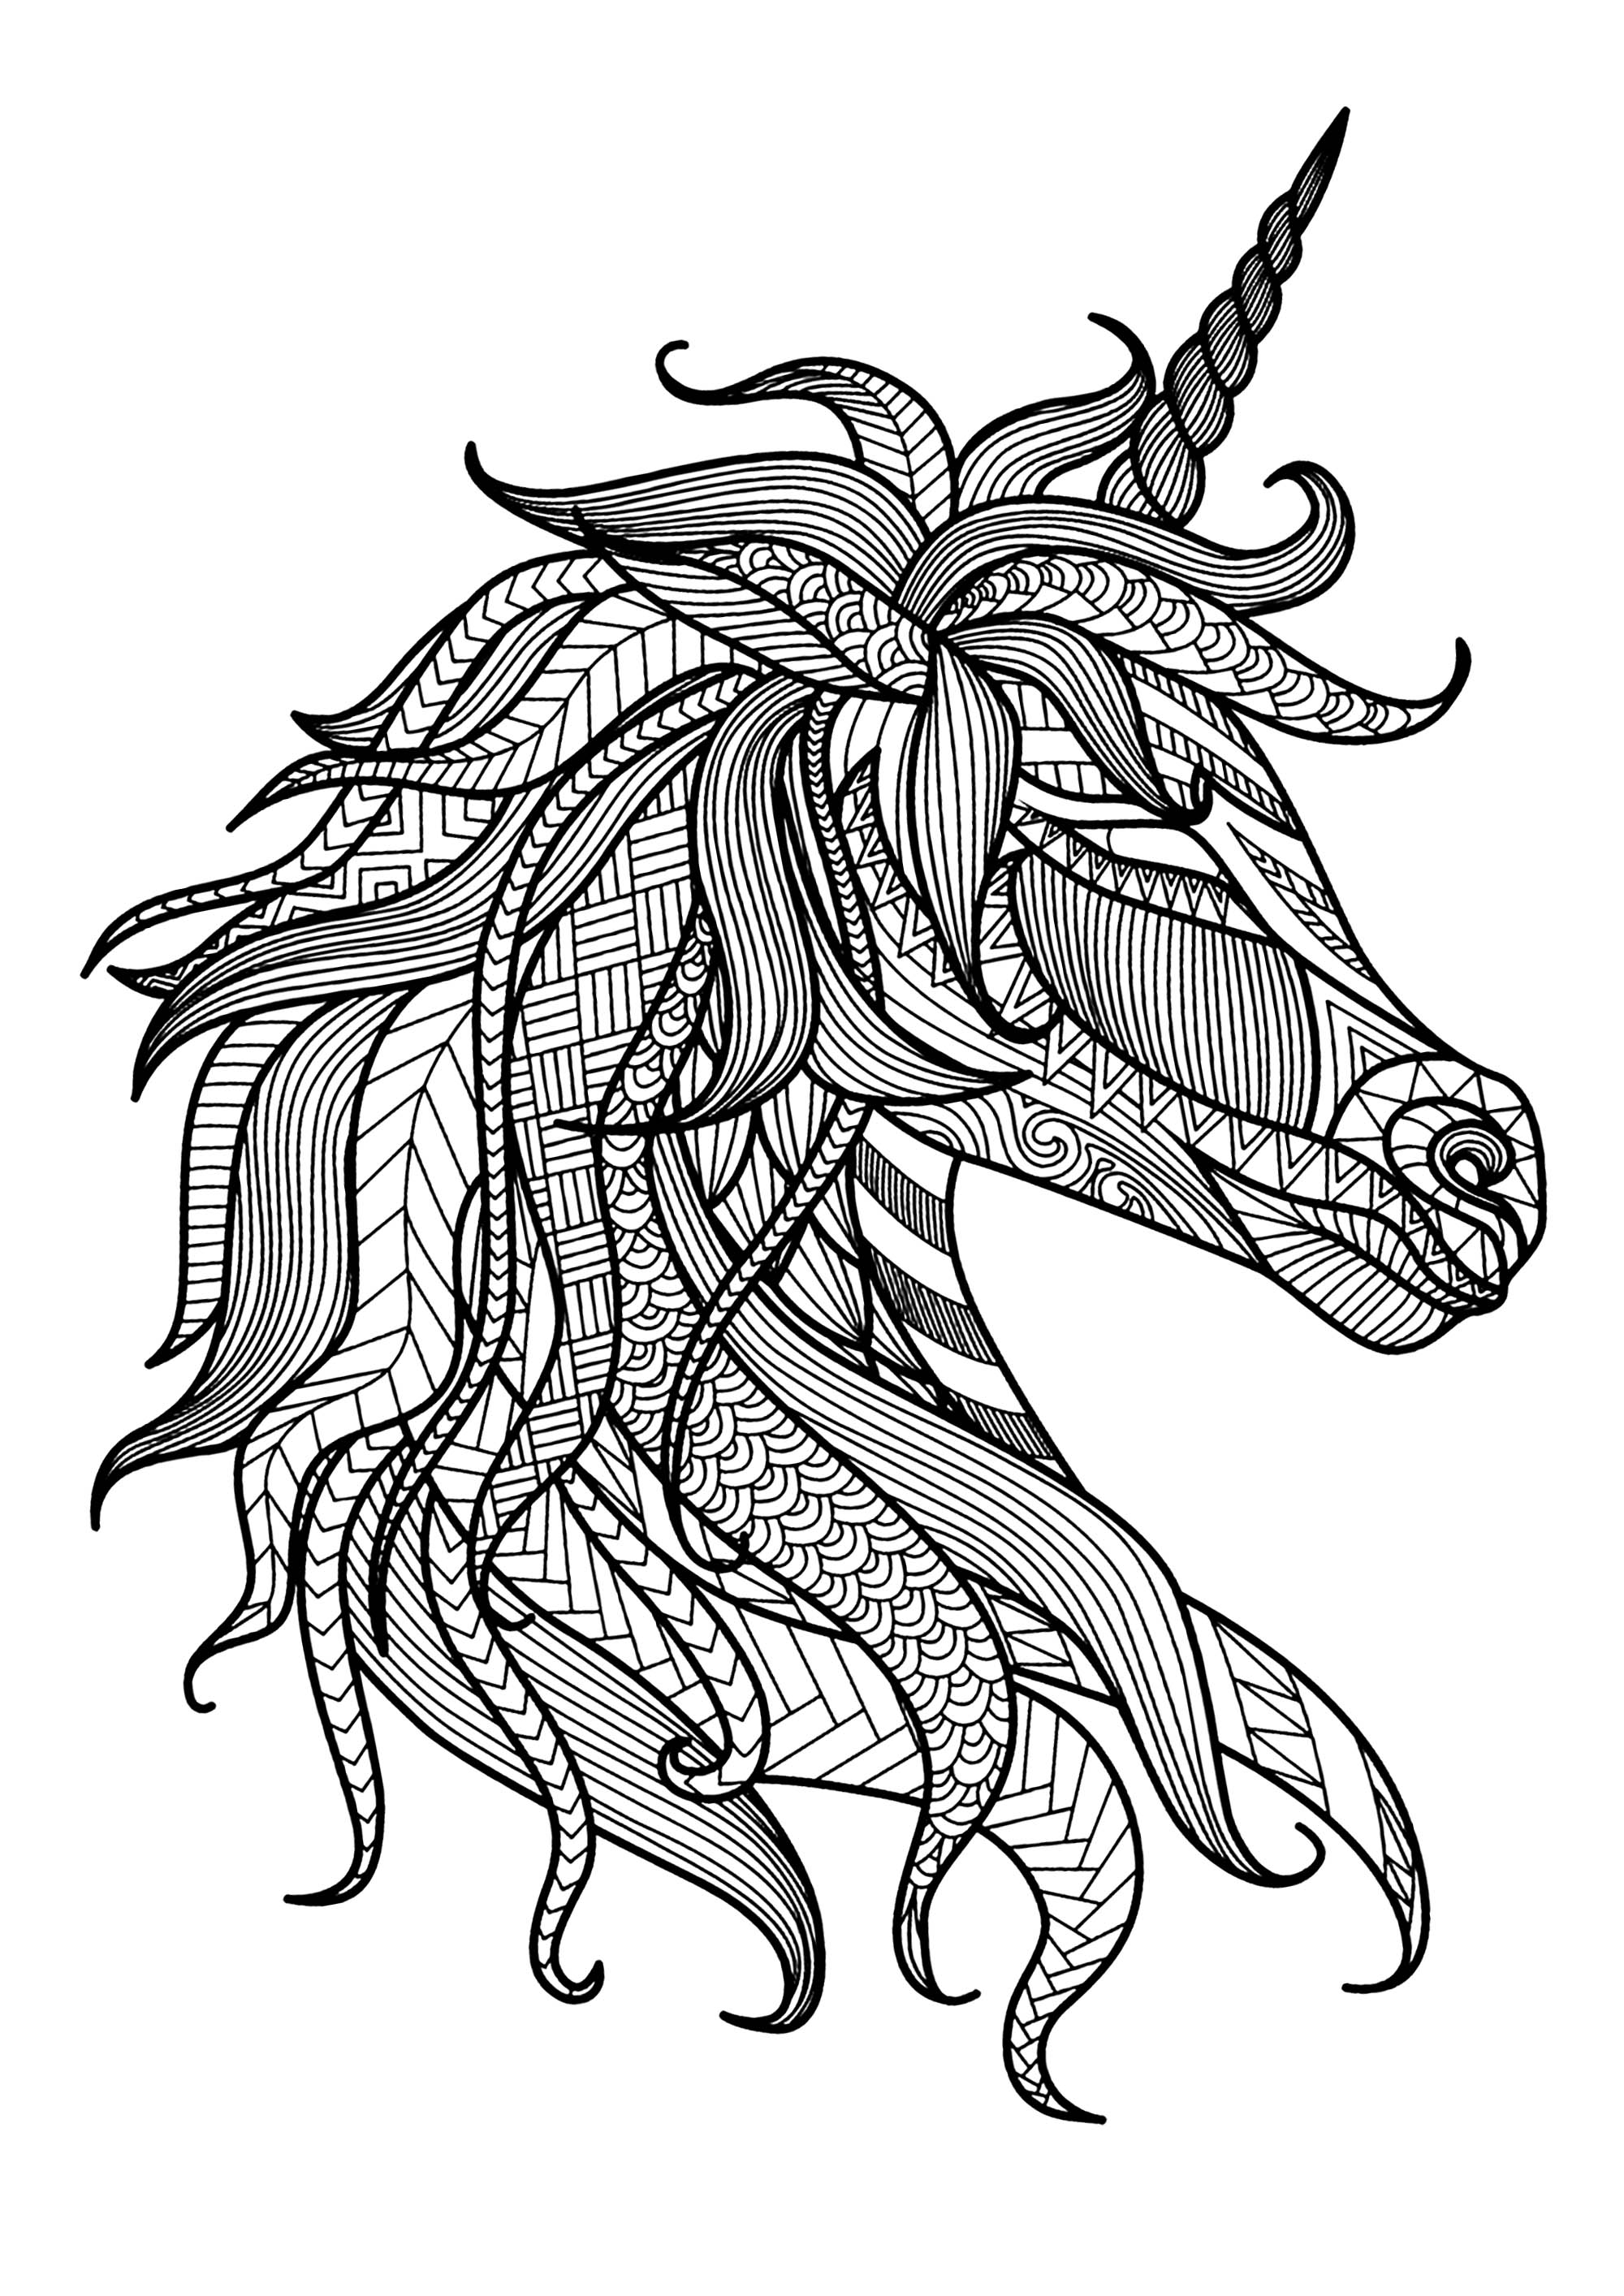 Unicorn head with complex and various patterns